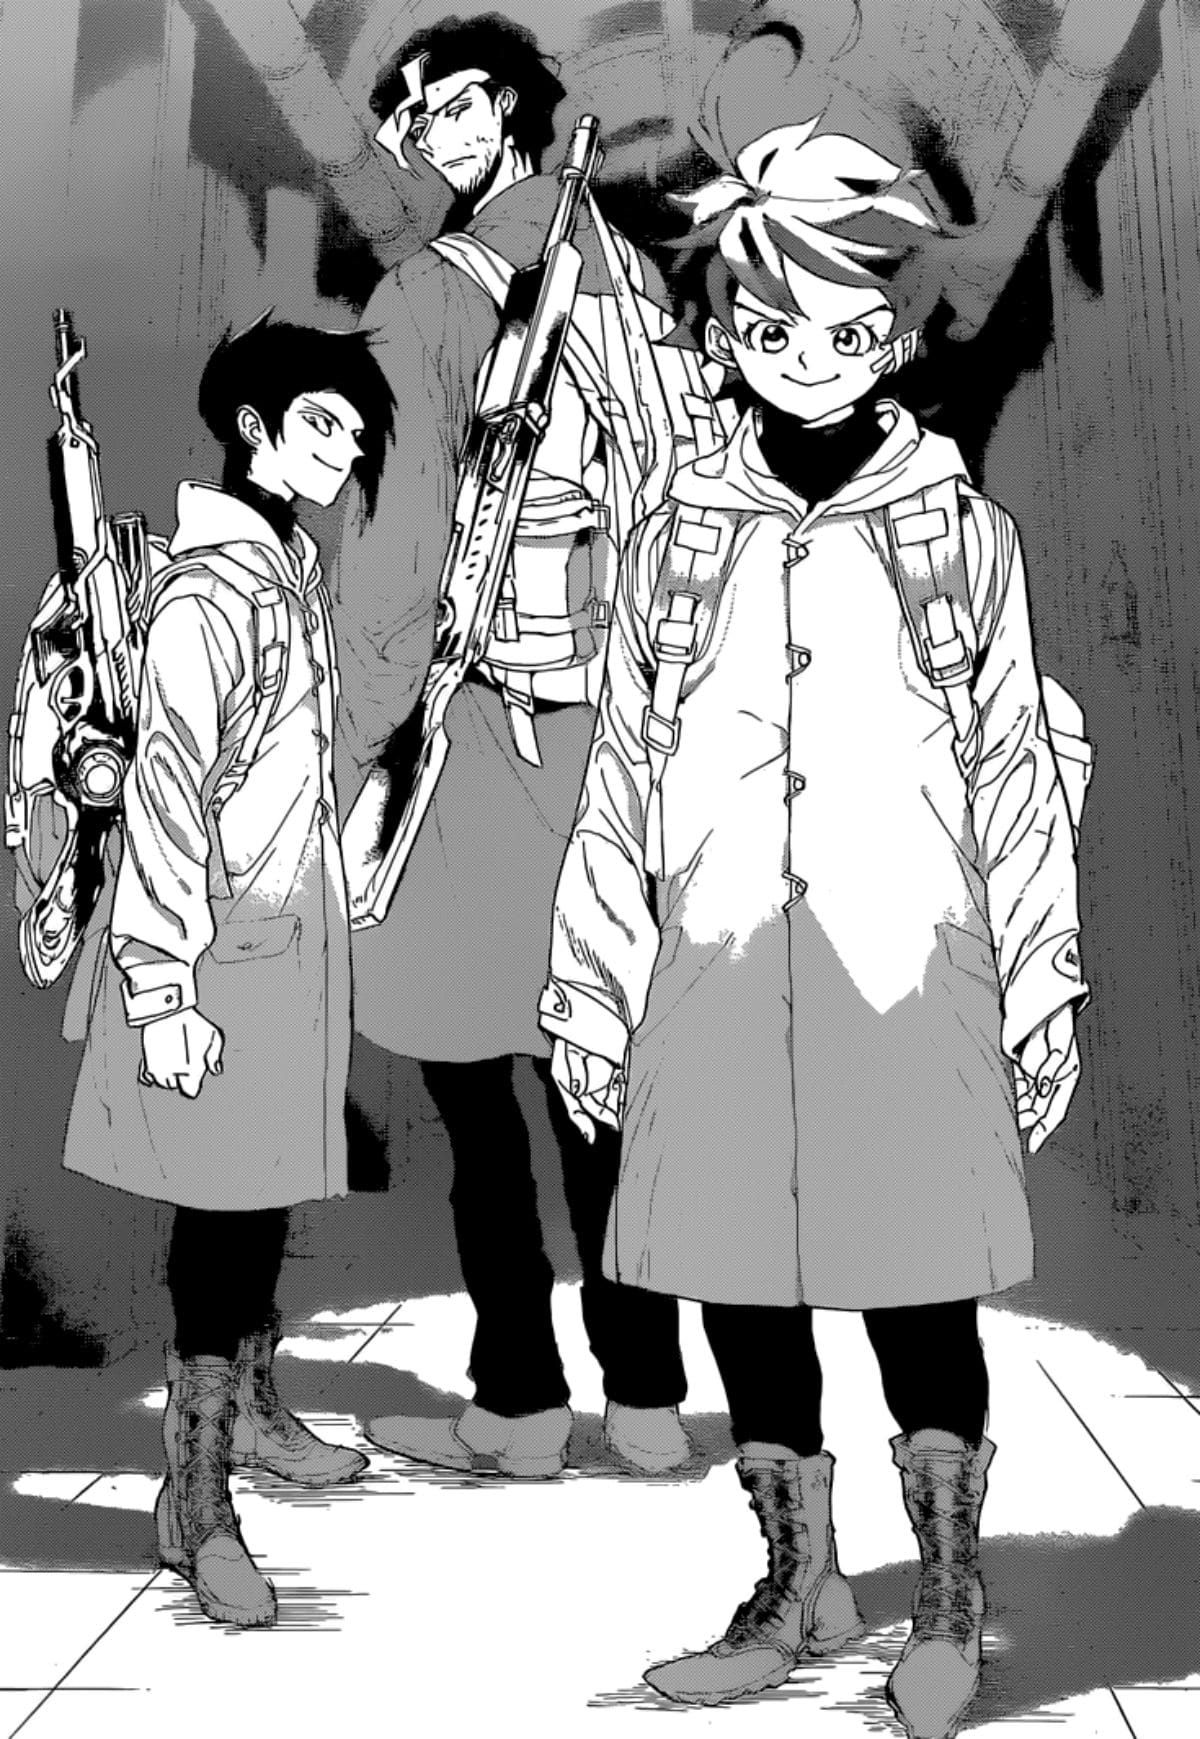 Yakusoku No Neverland - Episode 11 Vostfr : yakusoku, neverland, episode, vostfr, Promised, Neverland, Season, Release, Confirmed, 2020:, Yakusoku, Manga, Compared, Anime, [Spoilers], Neverland,, Manga,